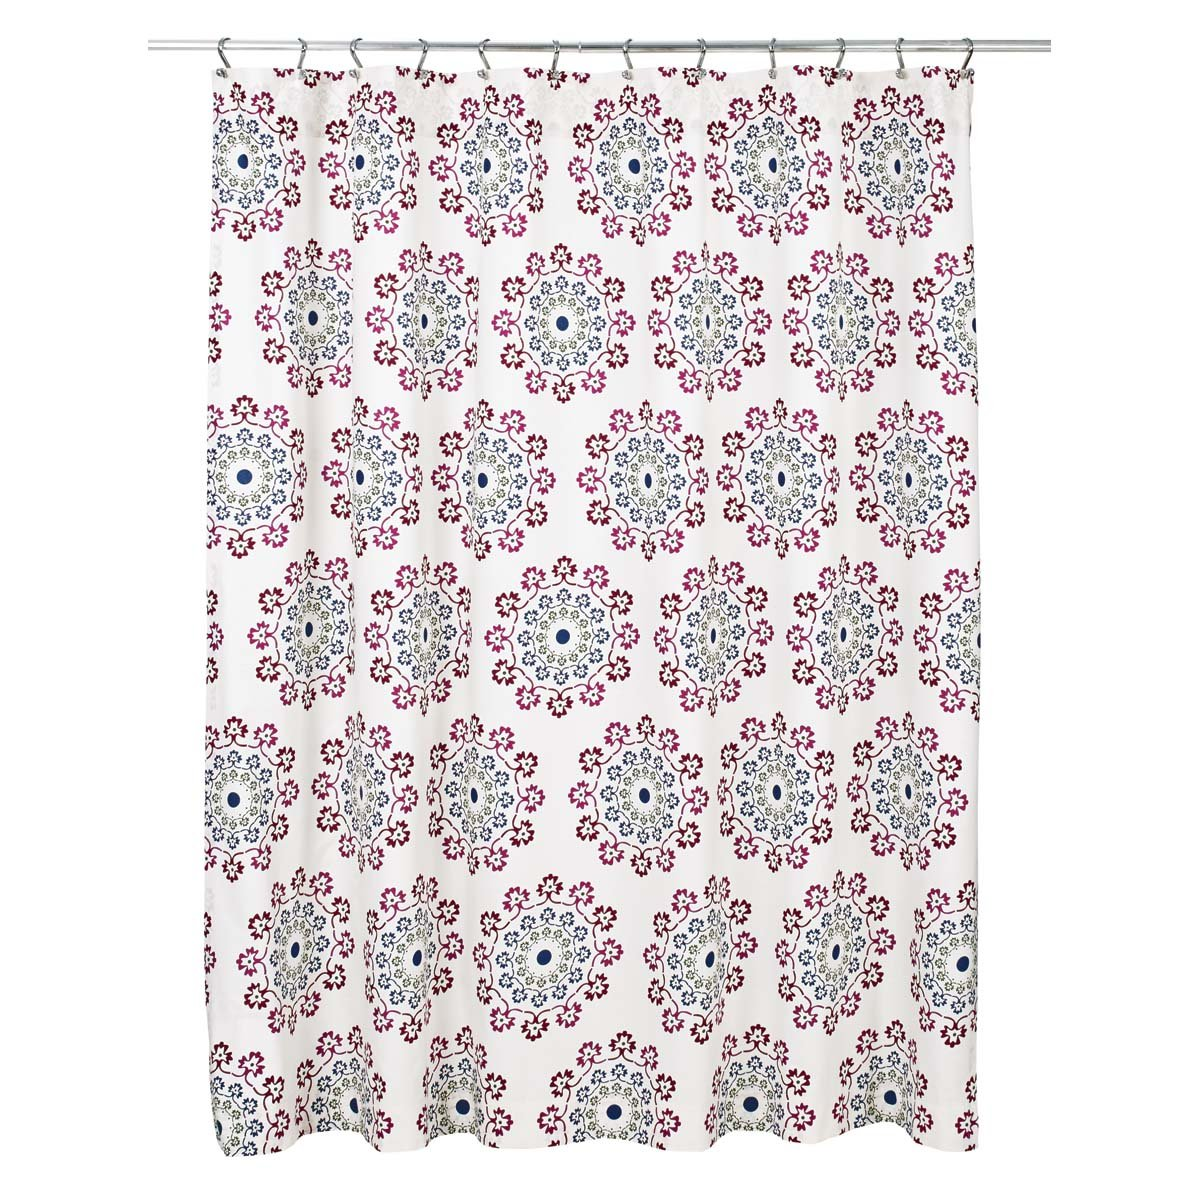 VHC Brands Abilene Star 19979 Shower Curtain